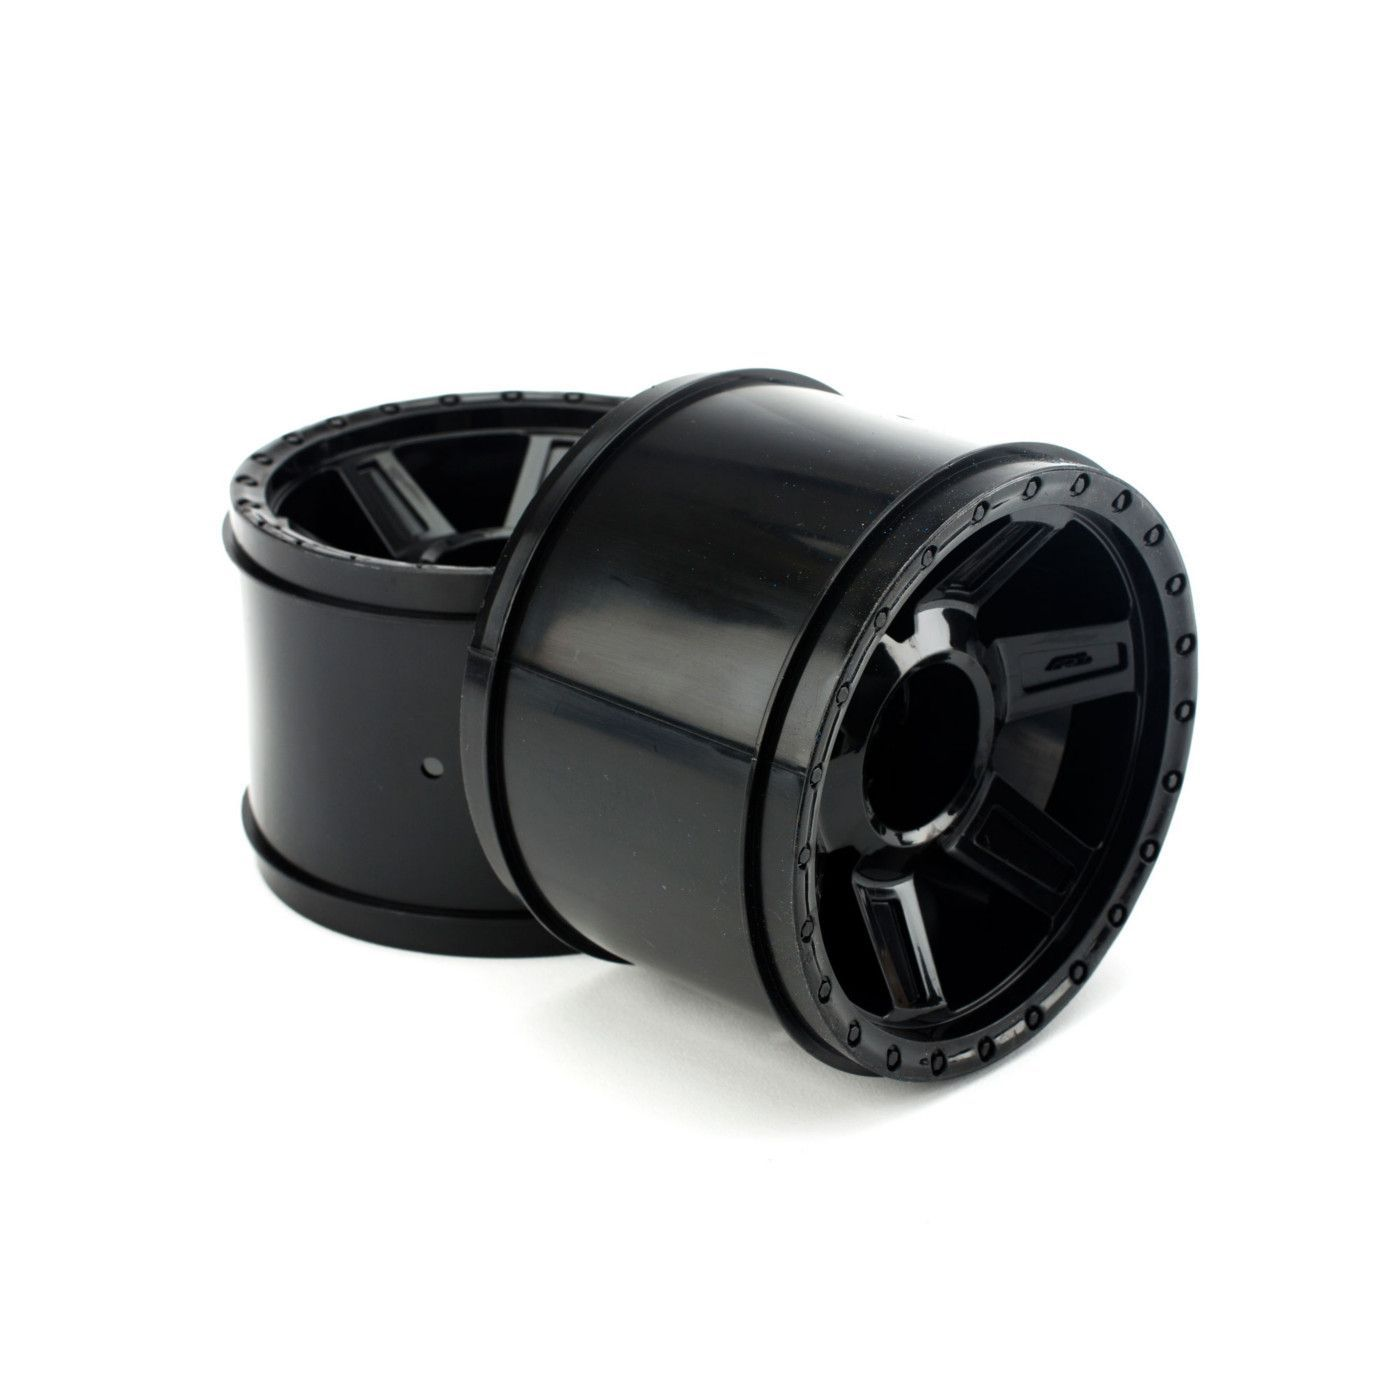 "Desperado 3.8 Black 1/2"" Offset 17mm Whls Fr/R"